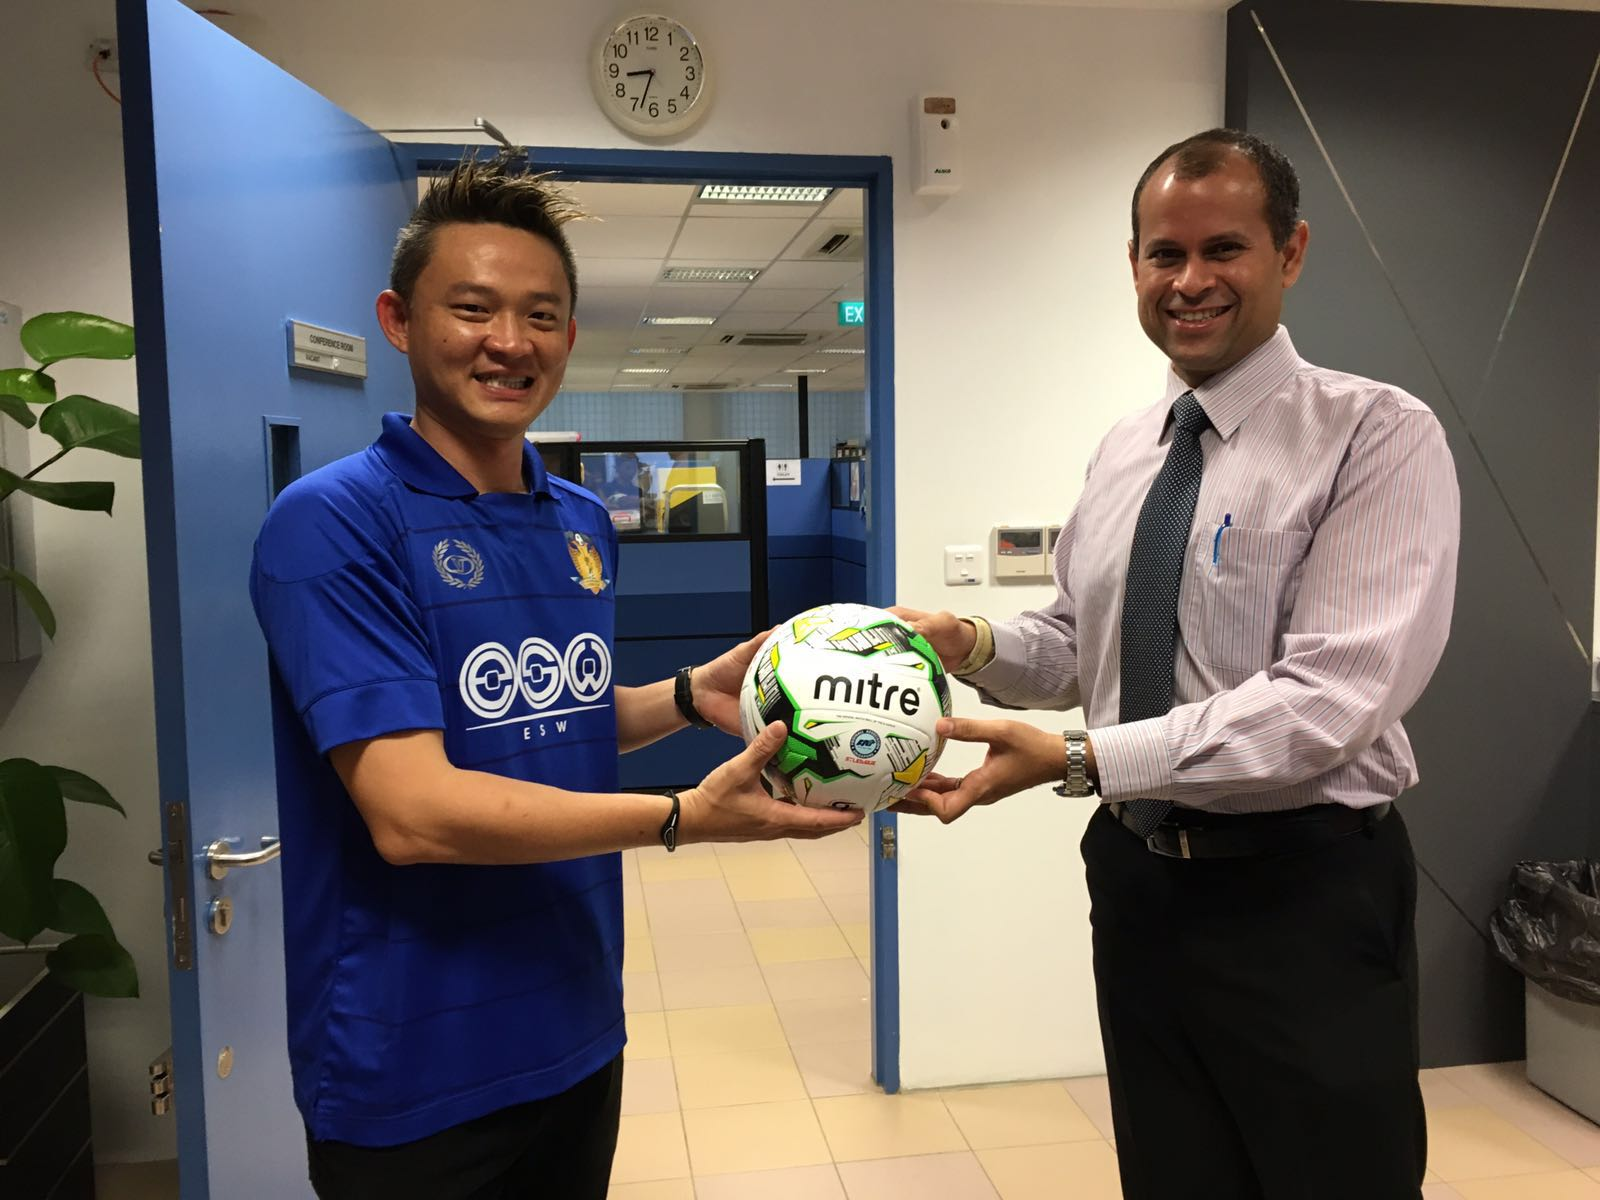 Matthew Tay presenting a signed Mitre football to Principal Mr Minjoot.